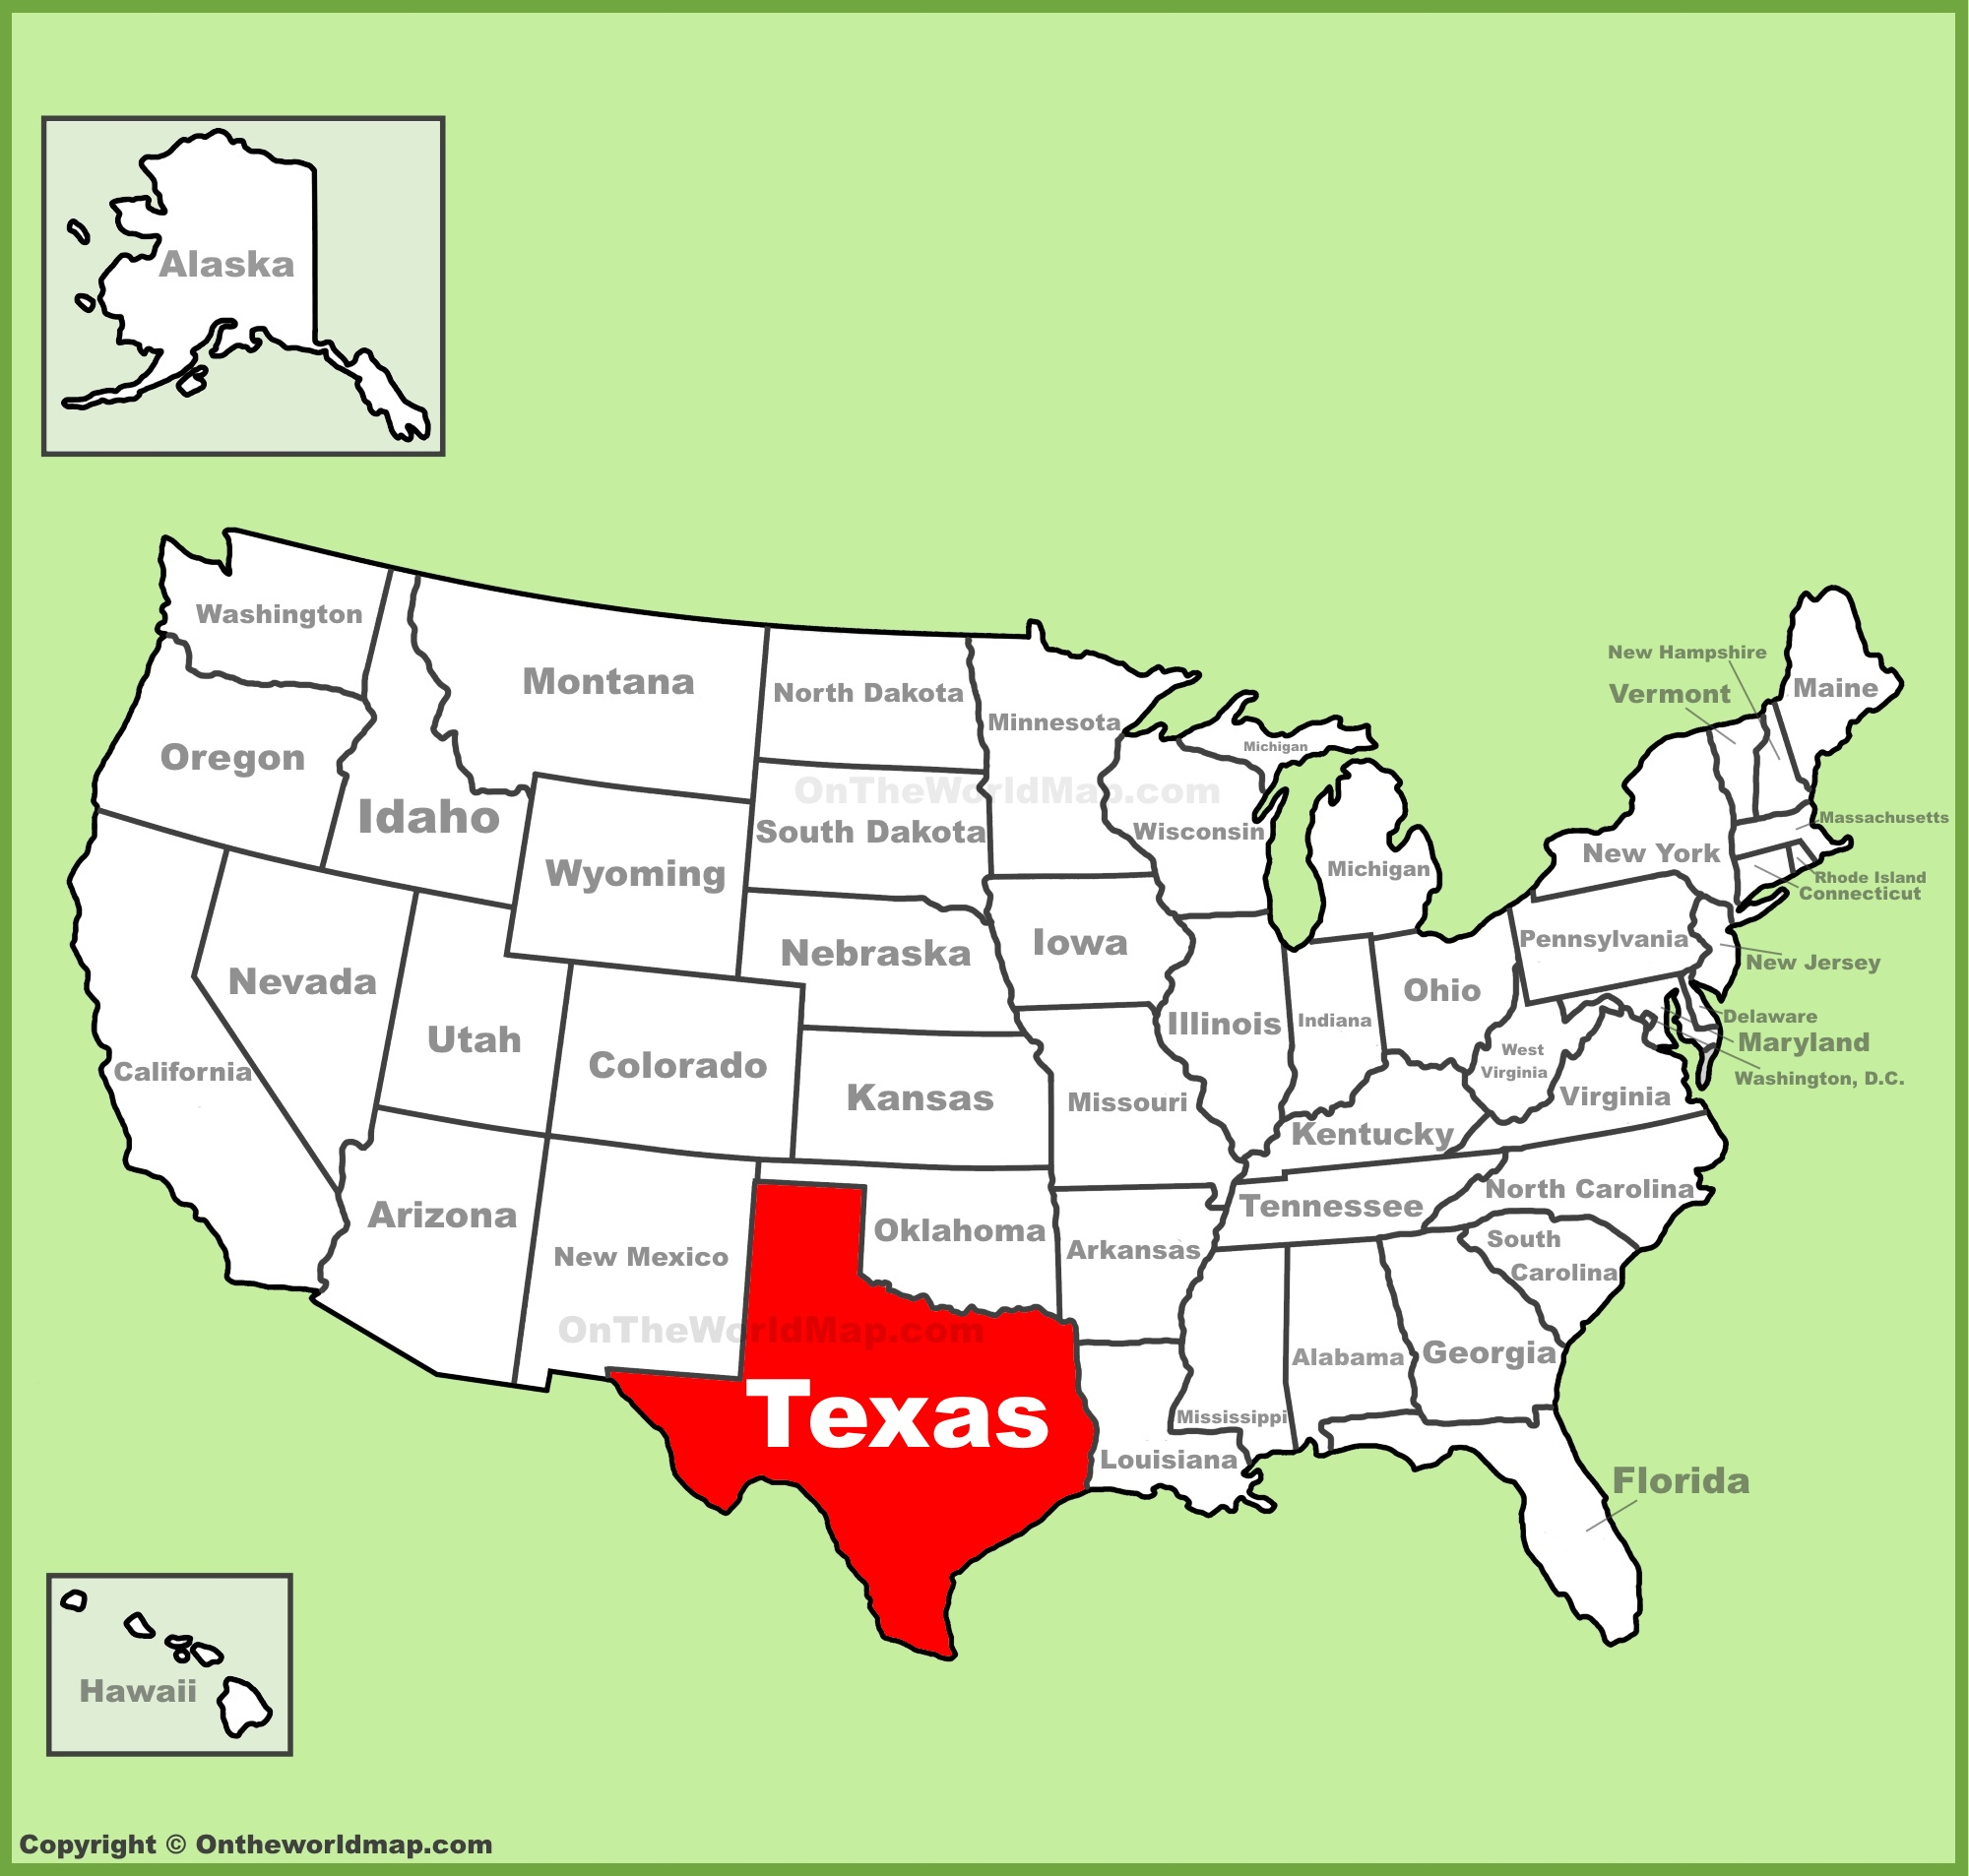 Texas Location On The US Map - Full map of texas